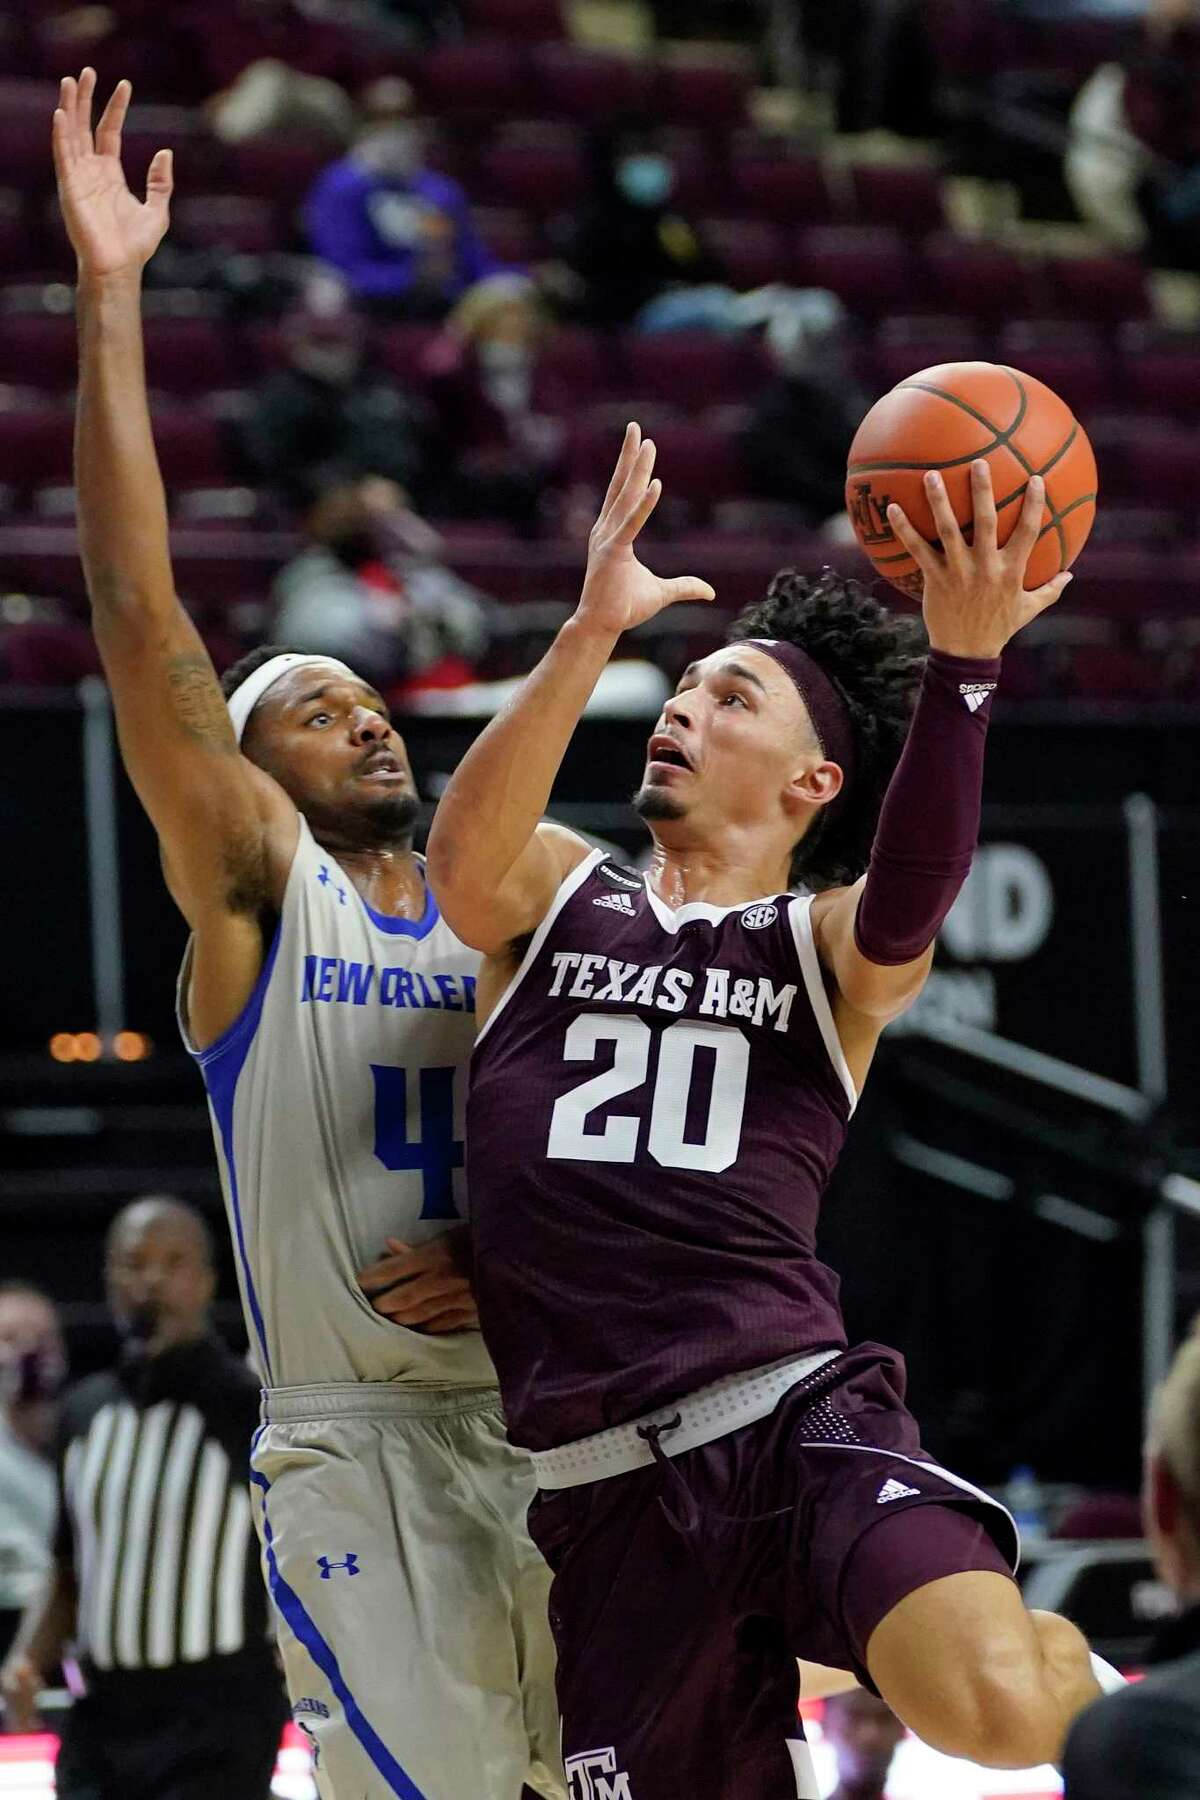 Texas A&M guard Andre Gordon (20) shoots over New Orleans forward Jahmel Myers (4) during the second half of an NCAA college basketball game Sunday, Nov. 29, 2020, in College Station, Texas. (AP Photo/Sam Craft)